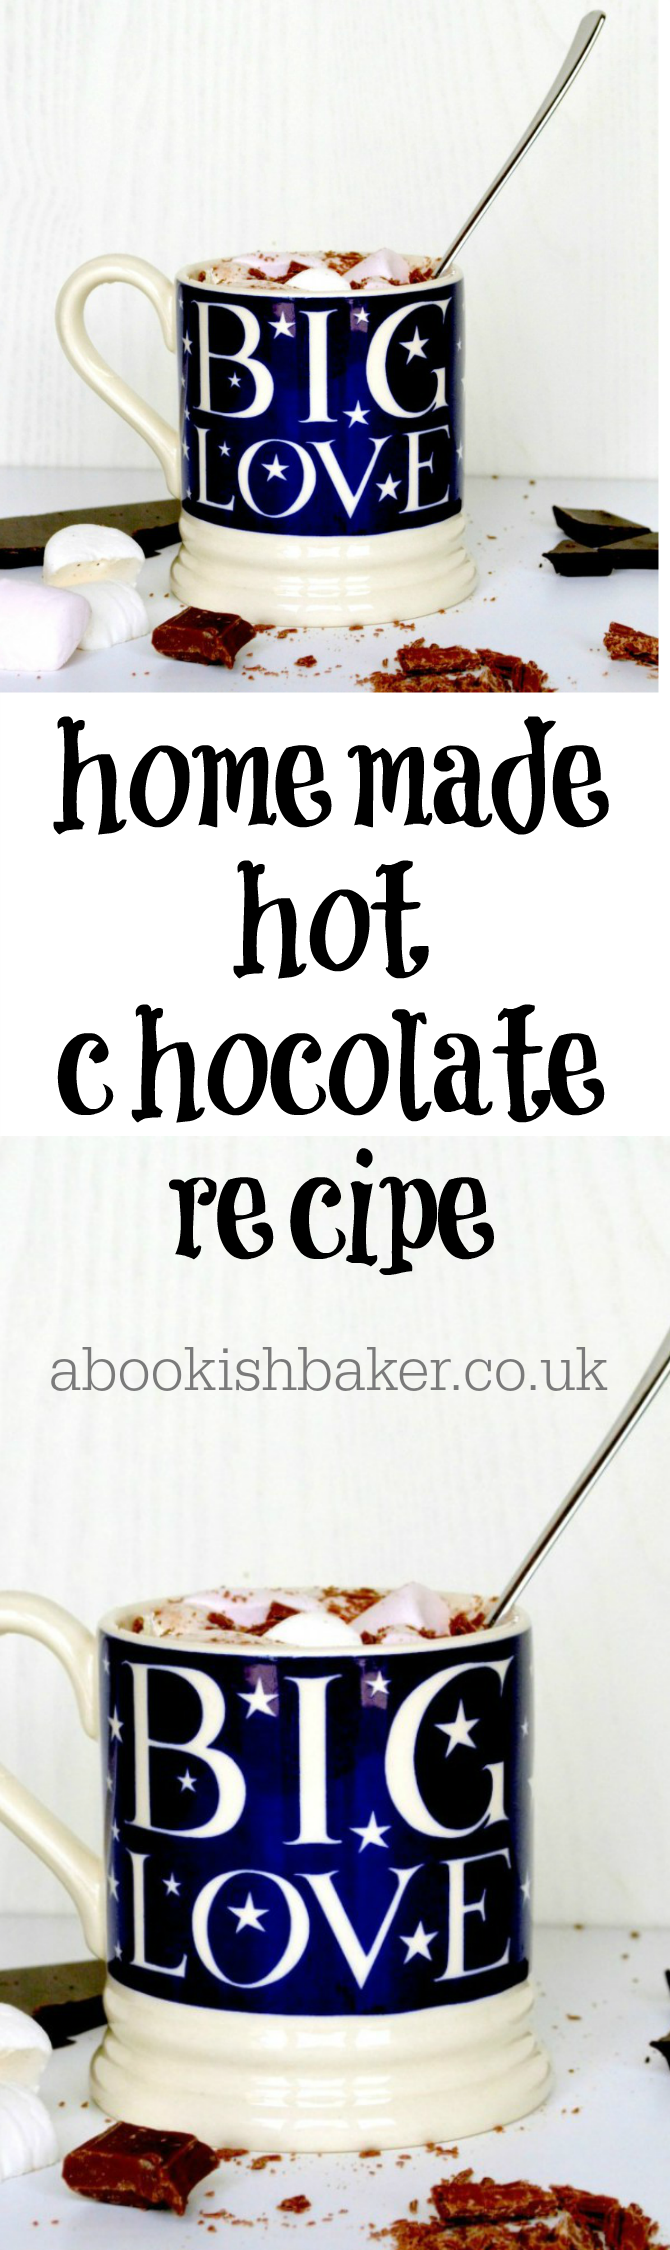 homemade hot chocolate recipe - extremely delicious. Great for evenings in front of the fire, hygge, winter, cold days. http://abookishbaker.co.uk/